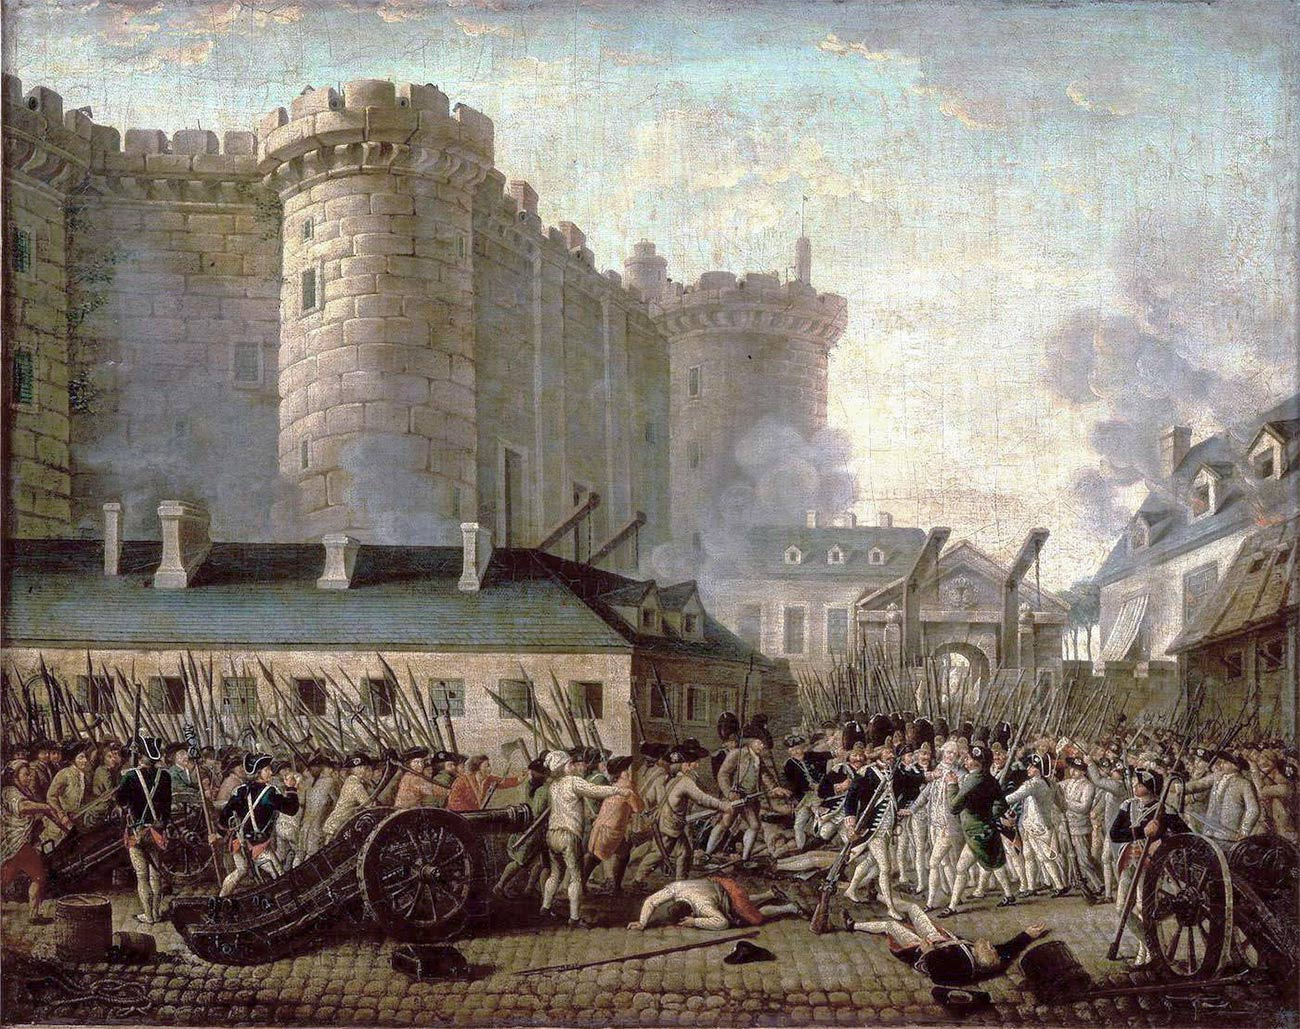 Storming of the Bastille, 14 July 1789